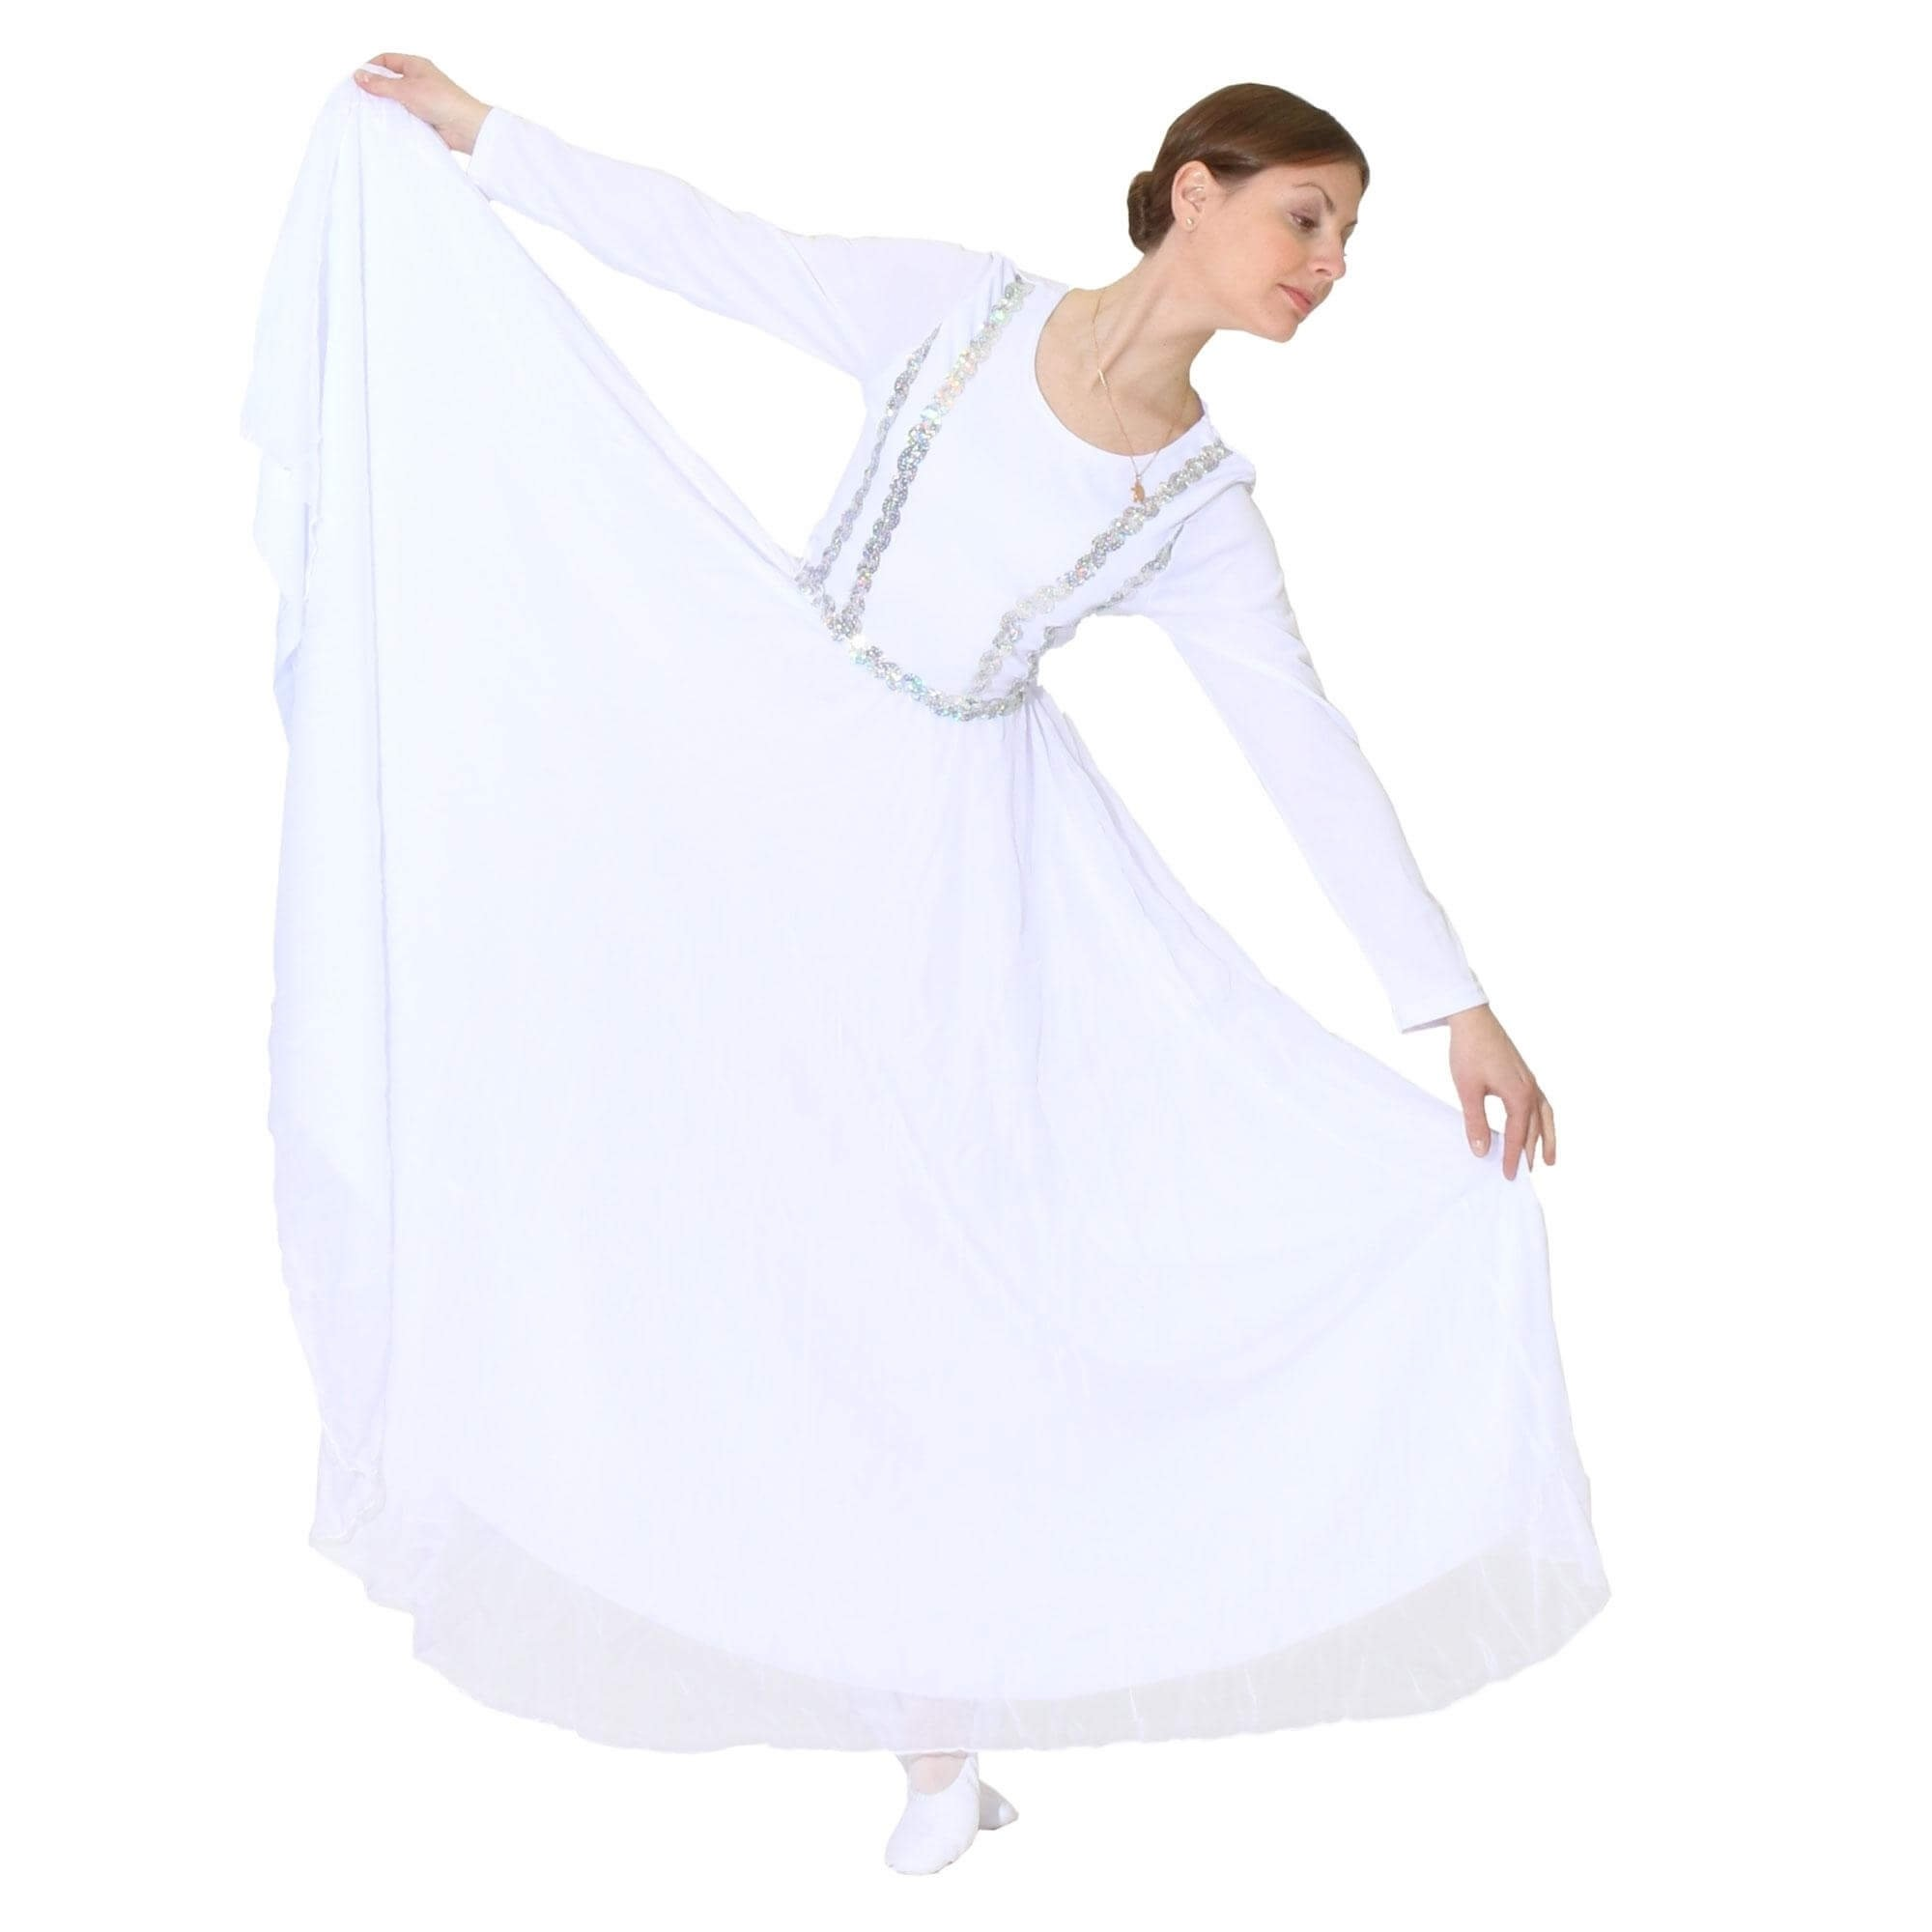 Danzcue Full Length Vivid Chiffon Praise Dance Dress